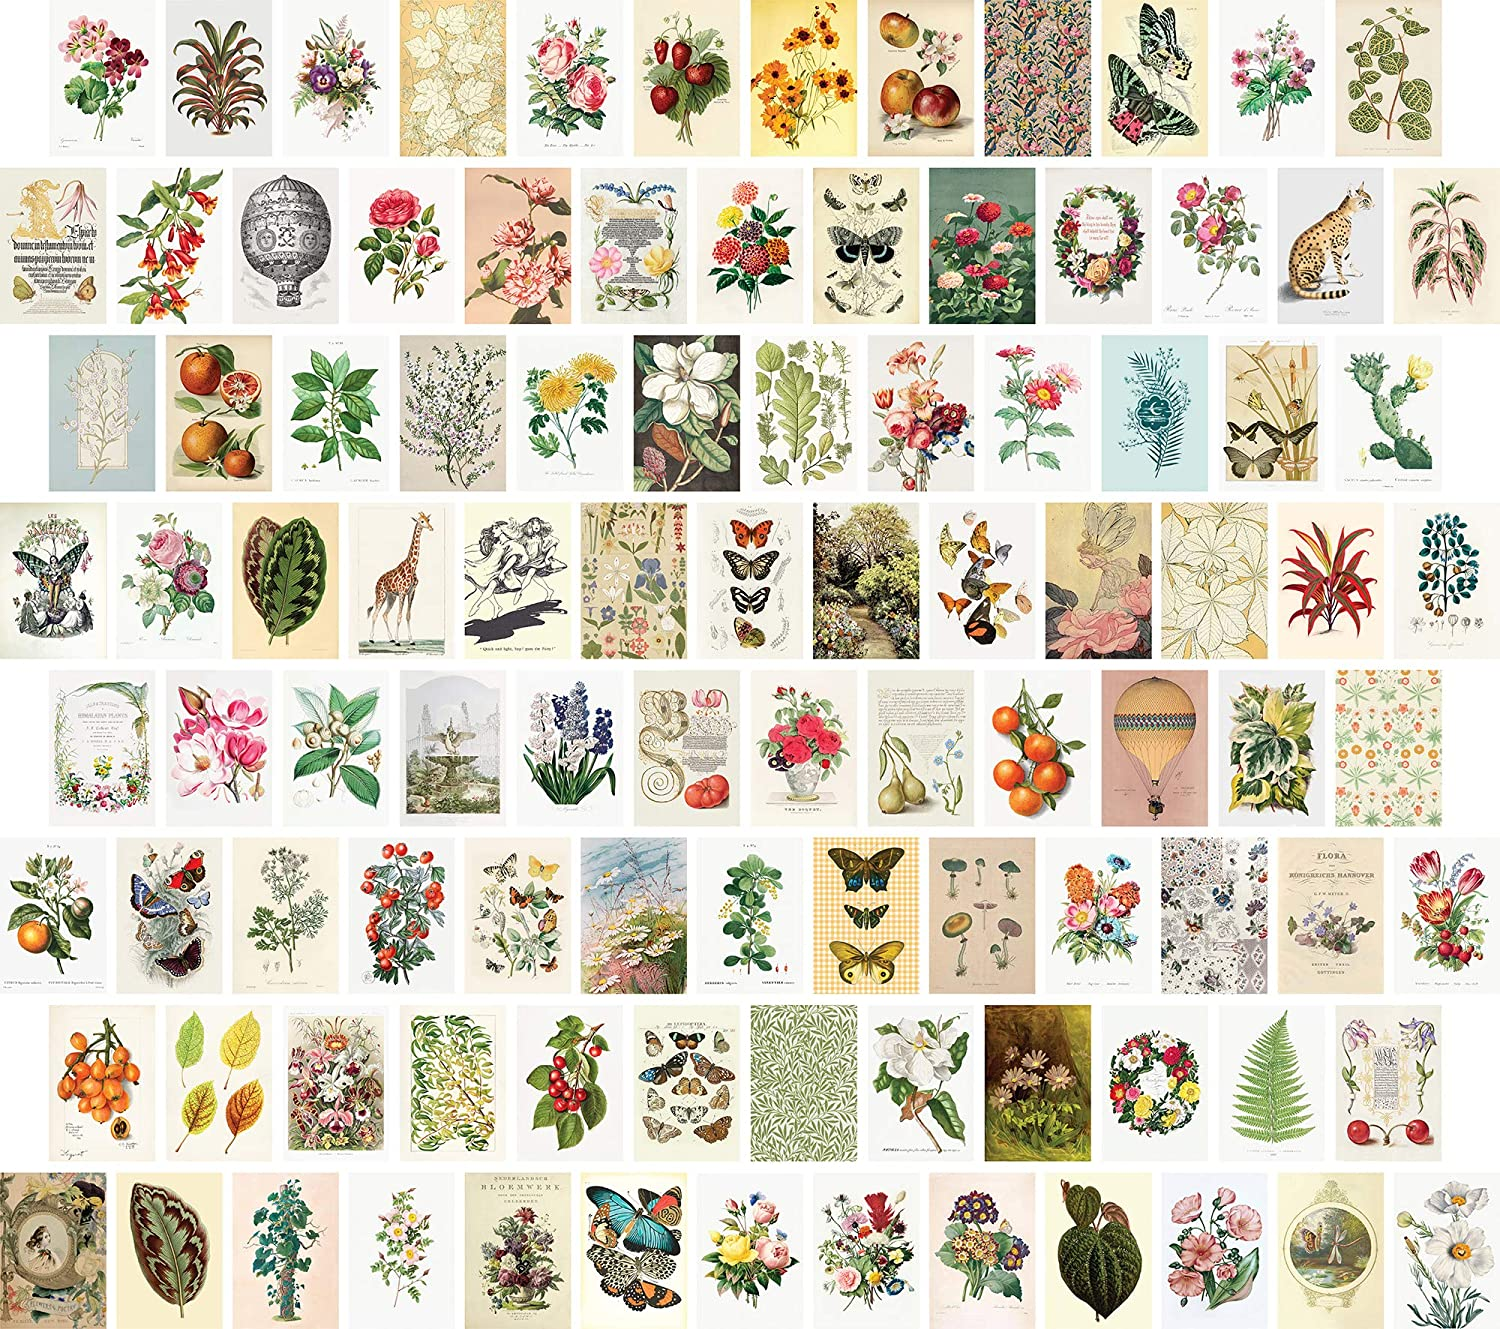 Artivo Wall Collage Kit Aesthetic Pictures, Vintage Wall Collage Kit, Bedroom Decor for Teen Girls, Botanical Nature Collage Kit for Wall Aesthetic Posters, 100 Set 4x6 inch, Photo Collection